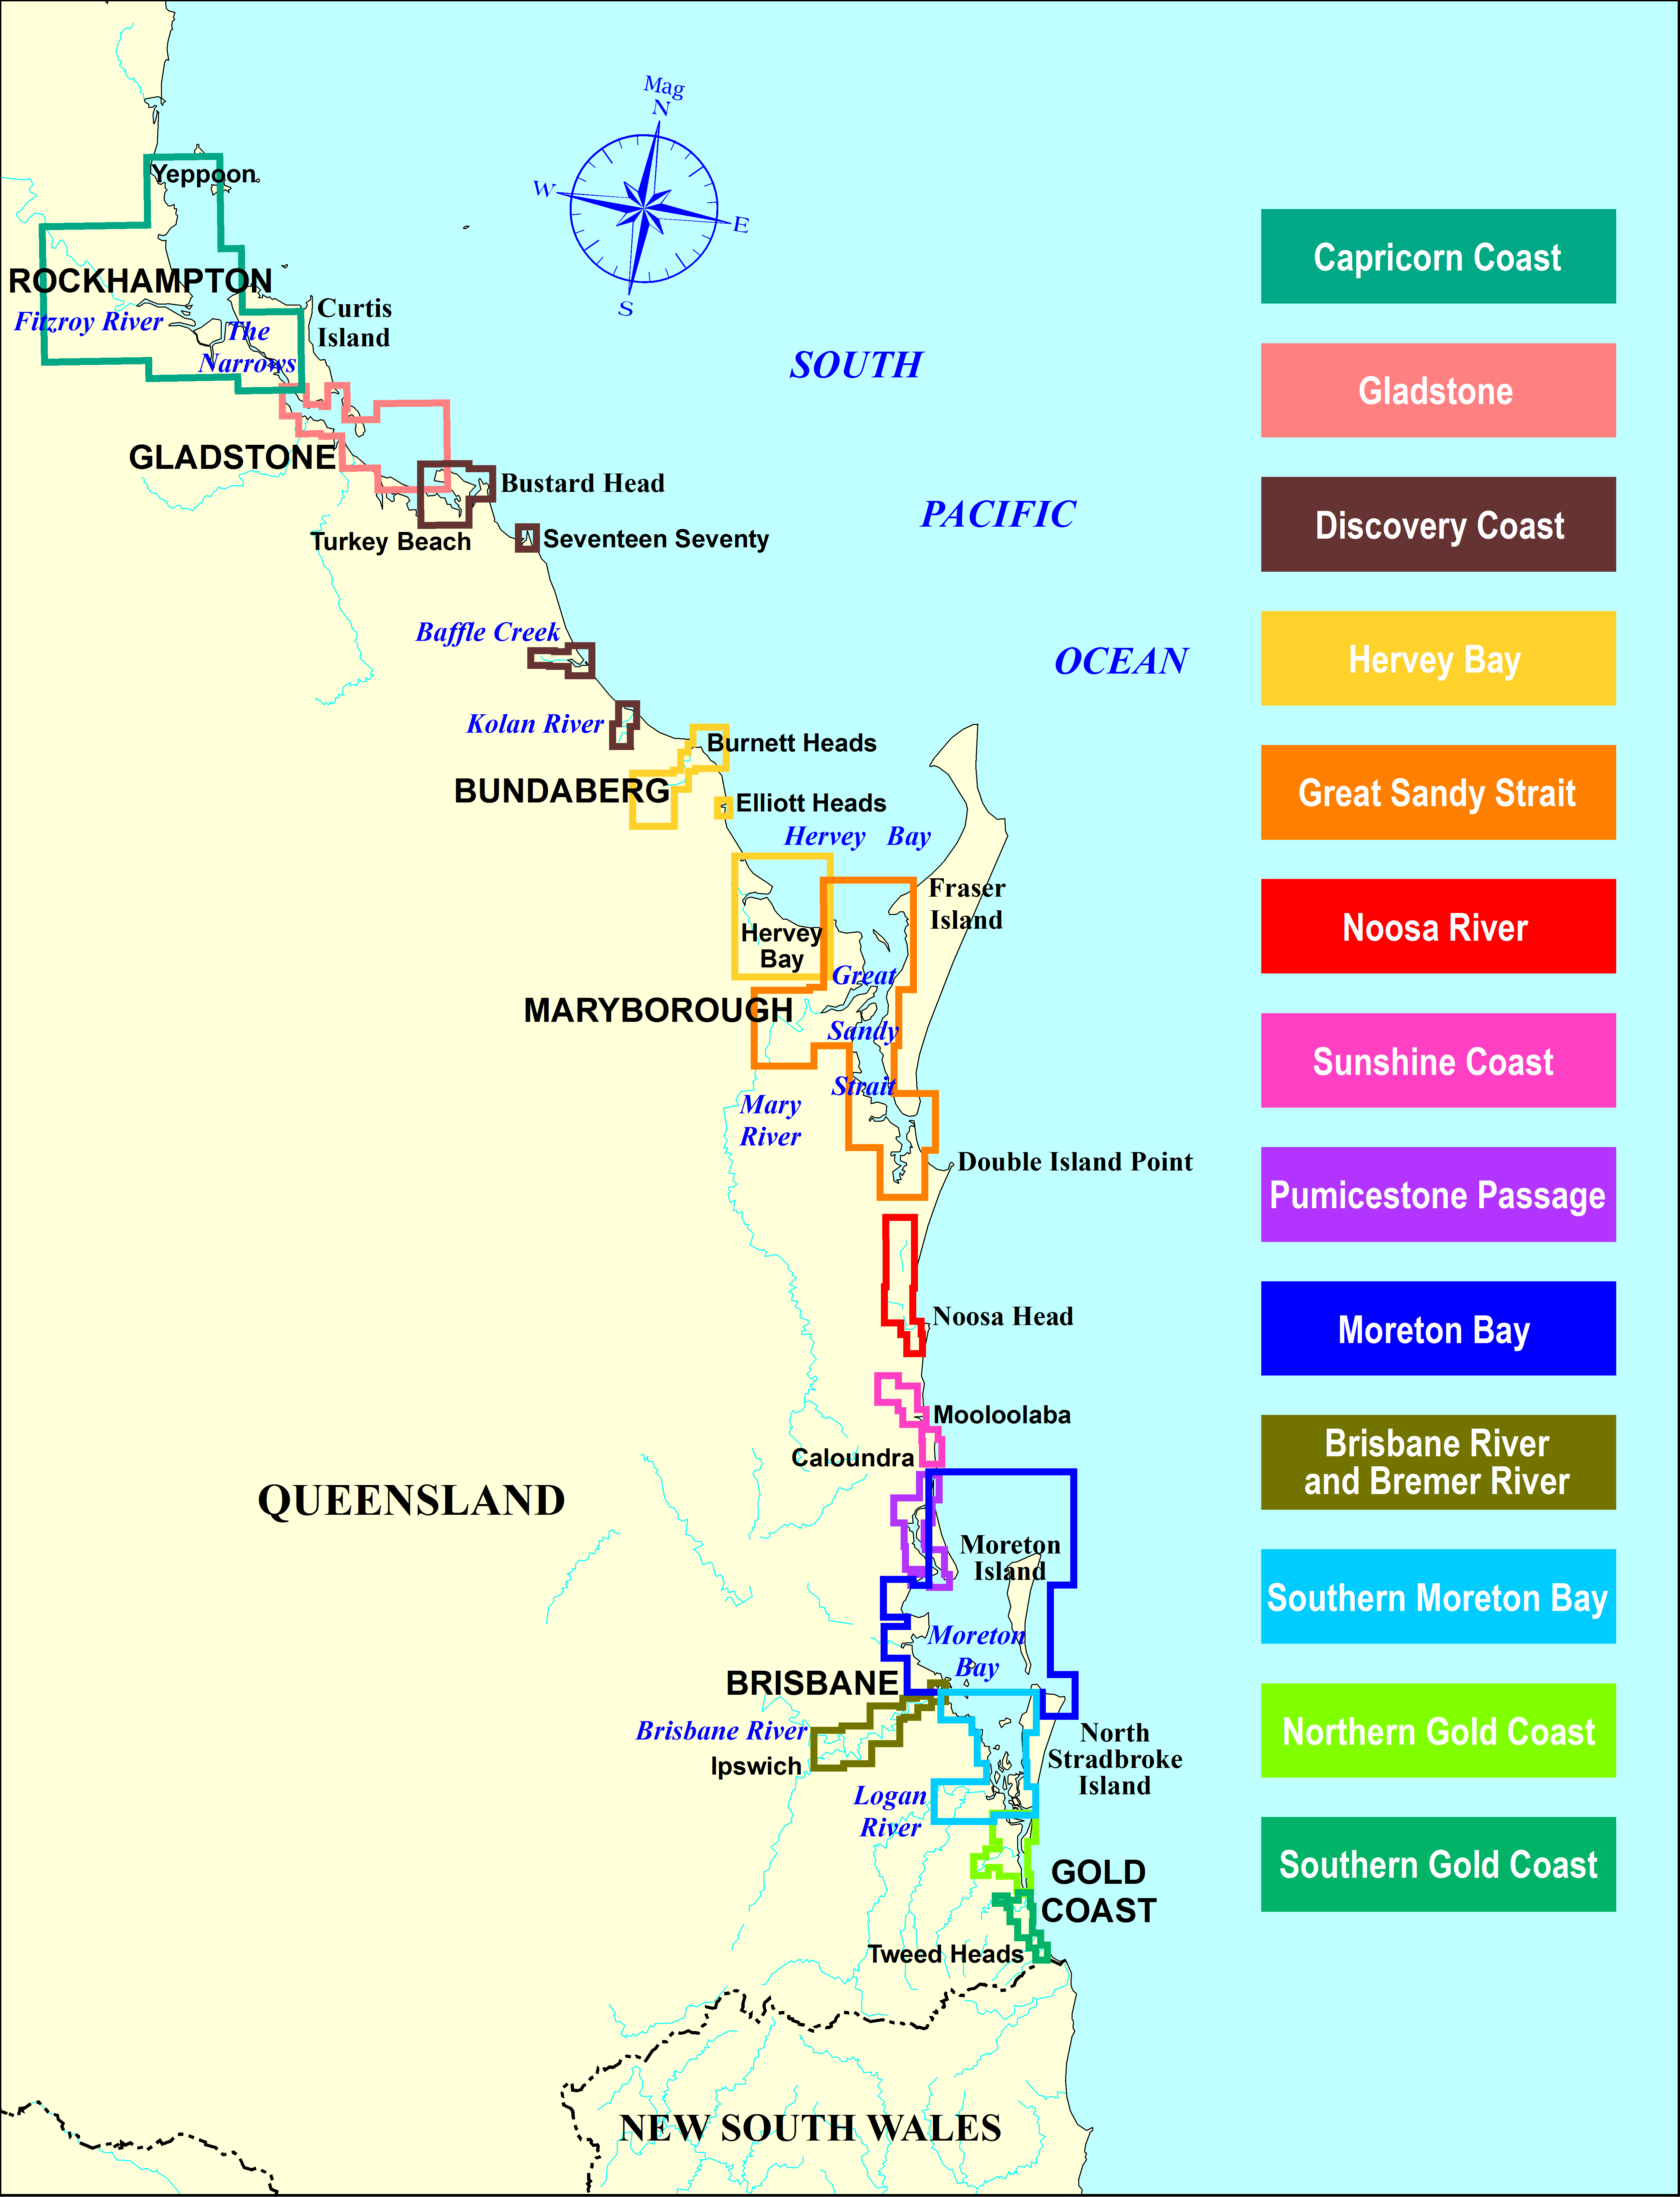 Green Zone Maps Boating maps (Maritime Safety Queensland) Green Zone Maps